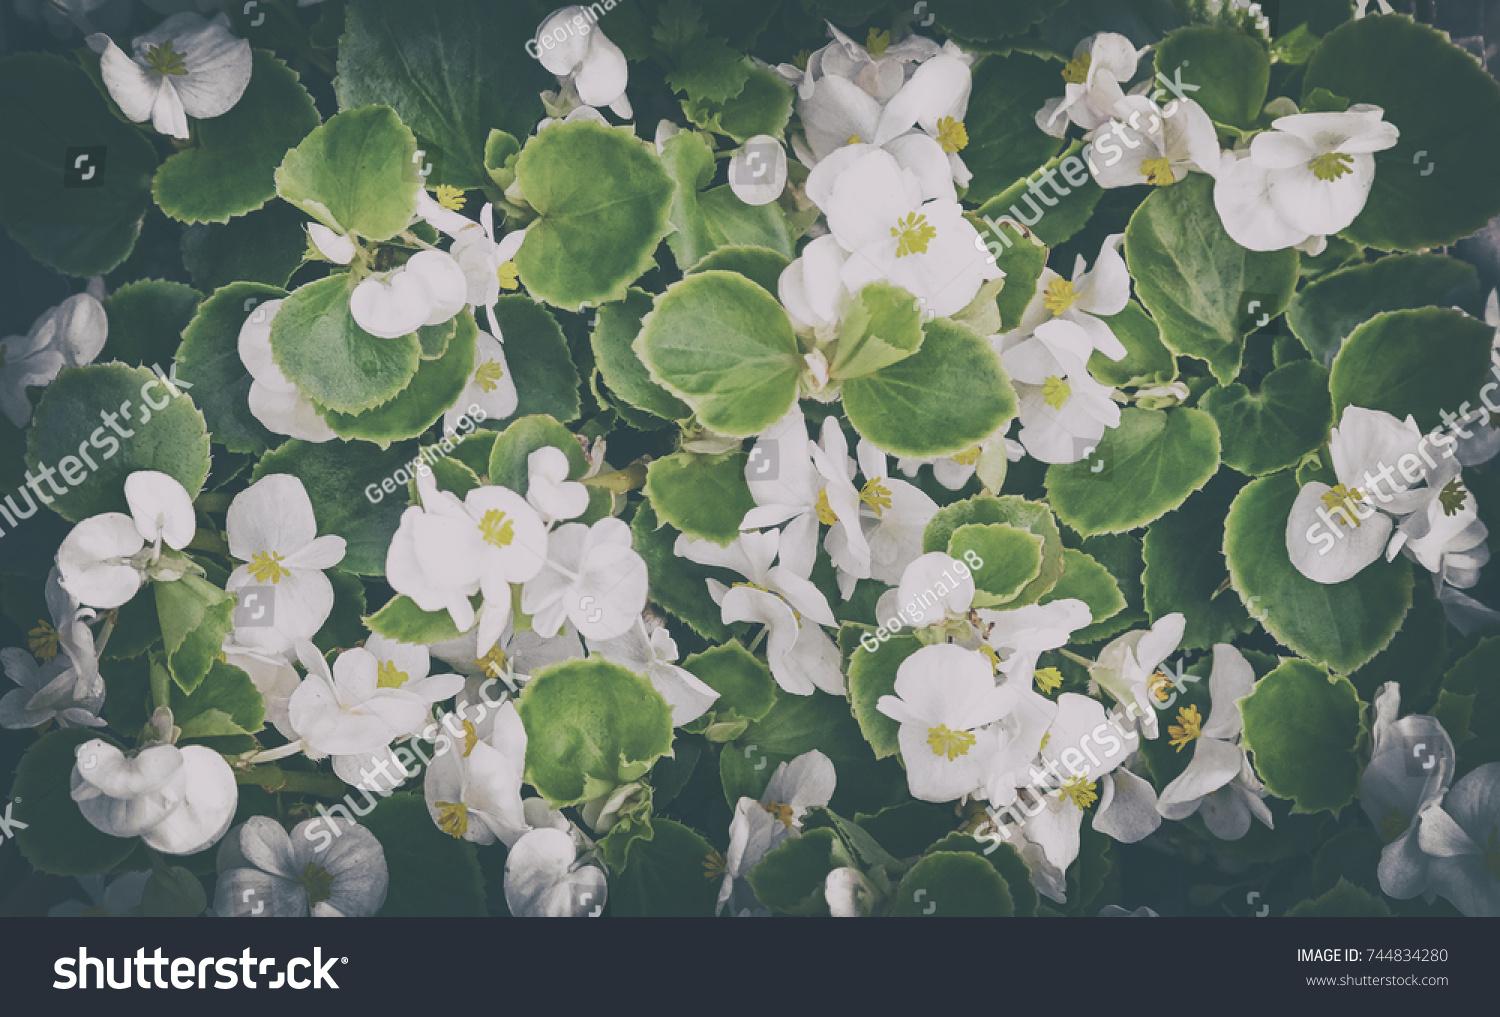 Delicate White Flowers Of Small Size Among The Green Leaves Blooming